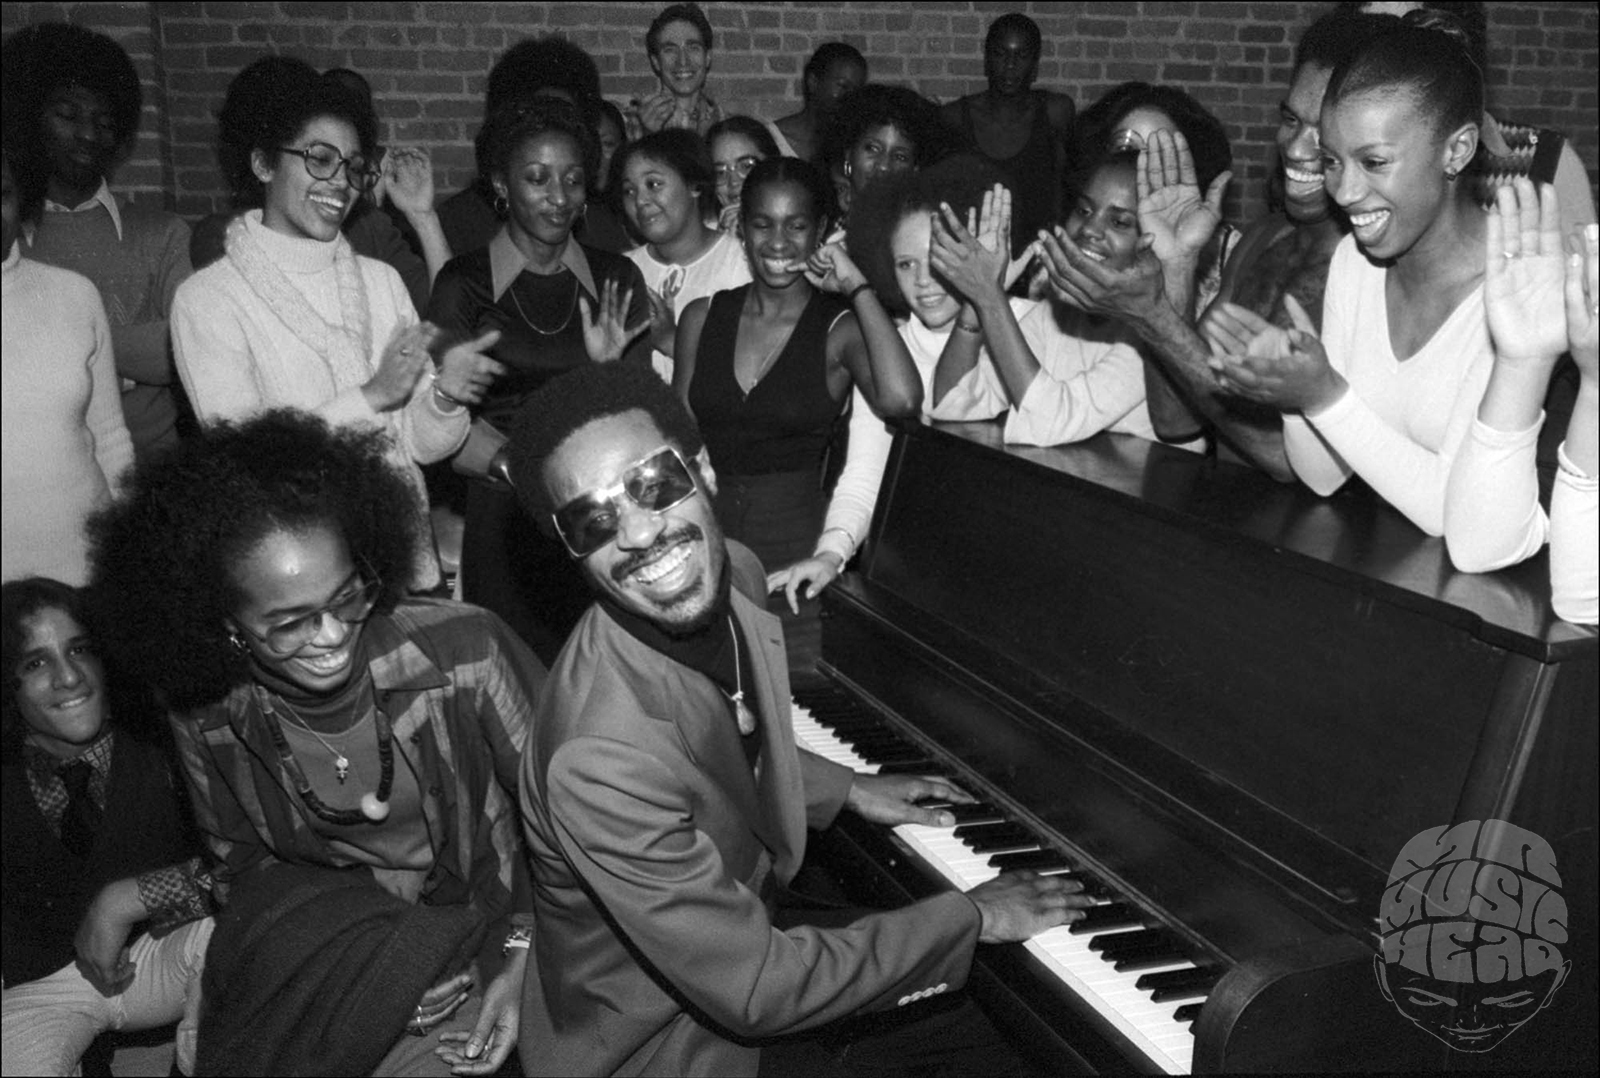 allan tannenbaum_Stevie Wonder_Piano.jpg